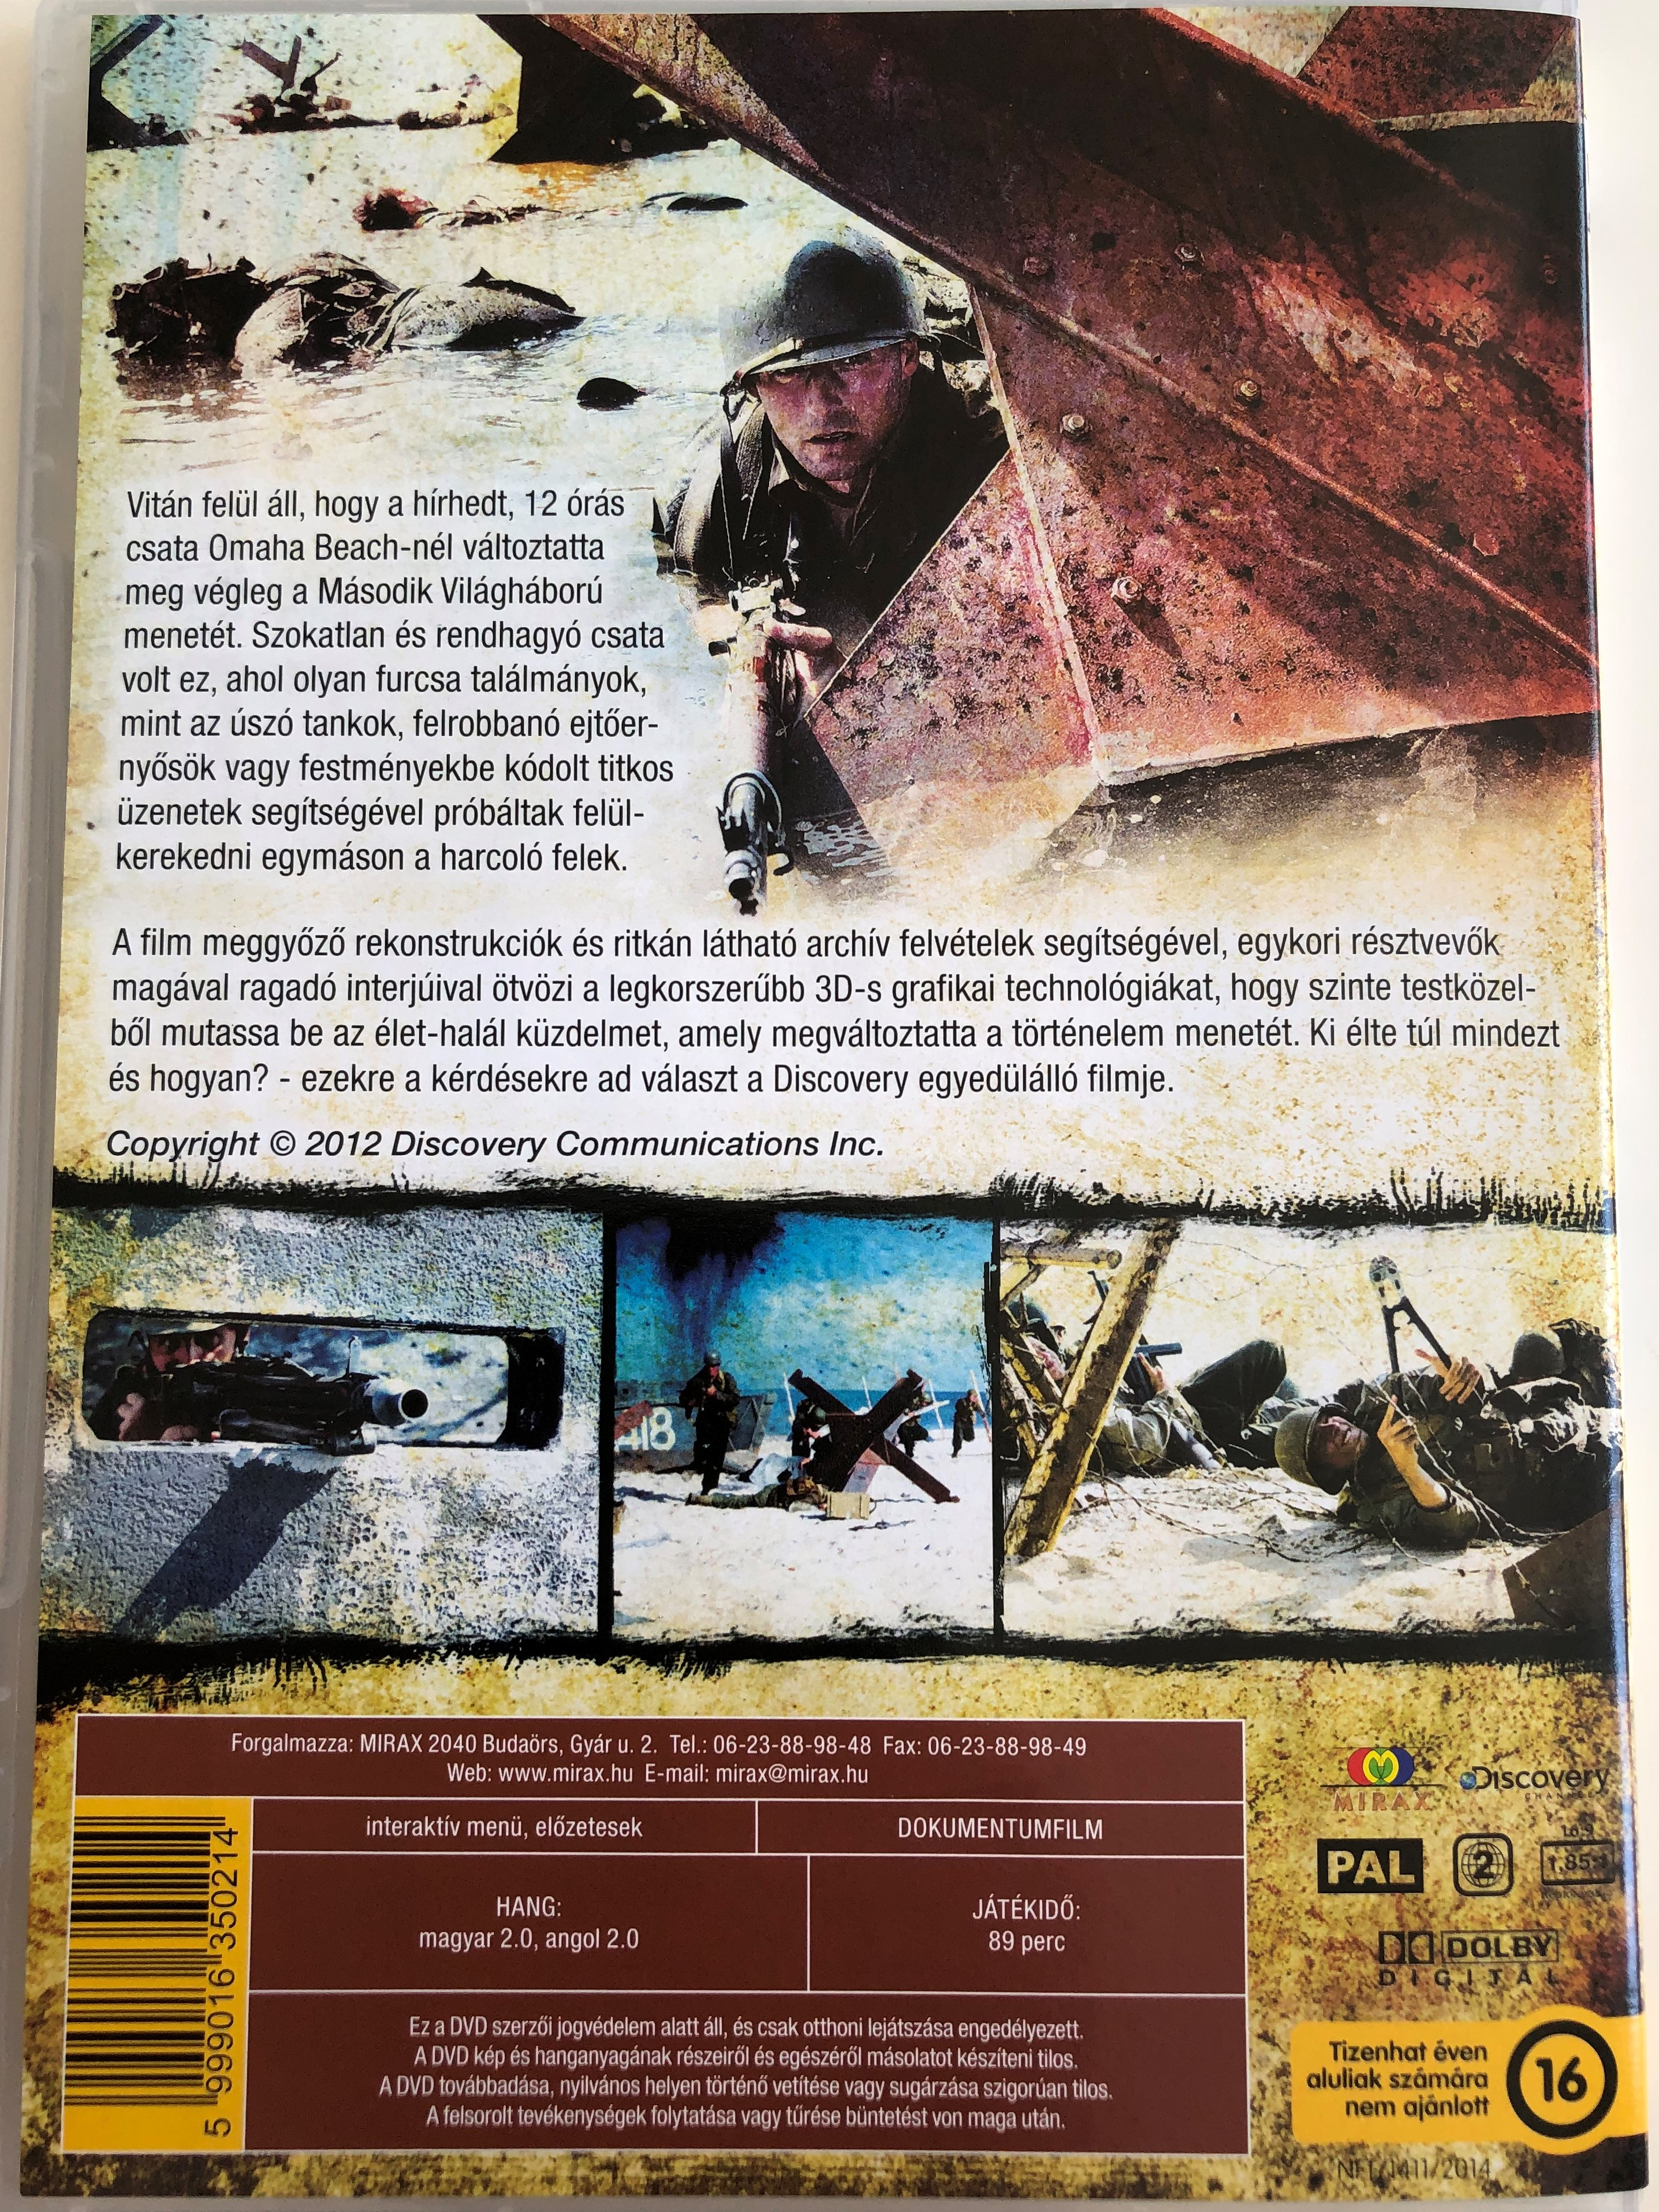 surviving-d-day-dvd-2011-t-l-ltem-a-d-napot-directed-by-richard-dale-alan-eyres-documentary-about-d-day-the-beginning-of-the-battle-of-normandy-discovery-channel-2-.jpg